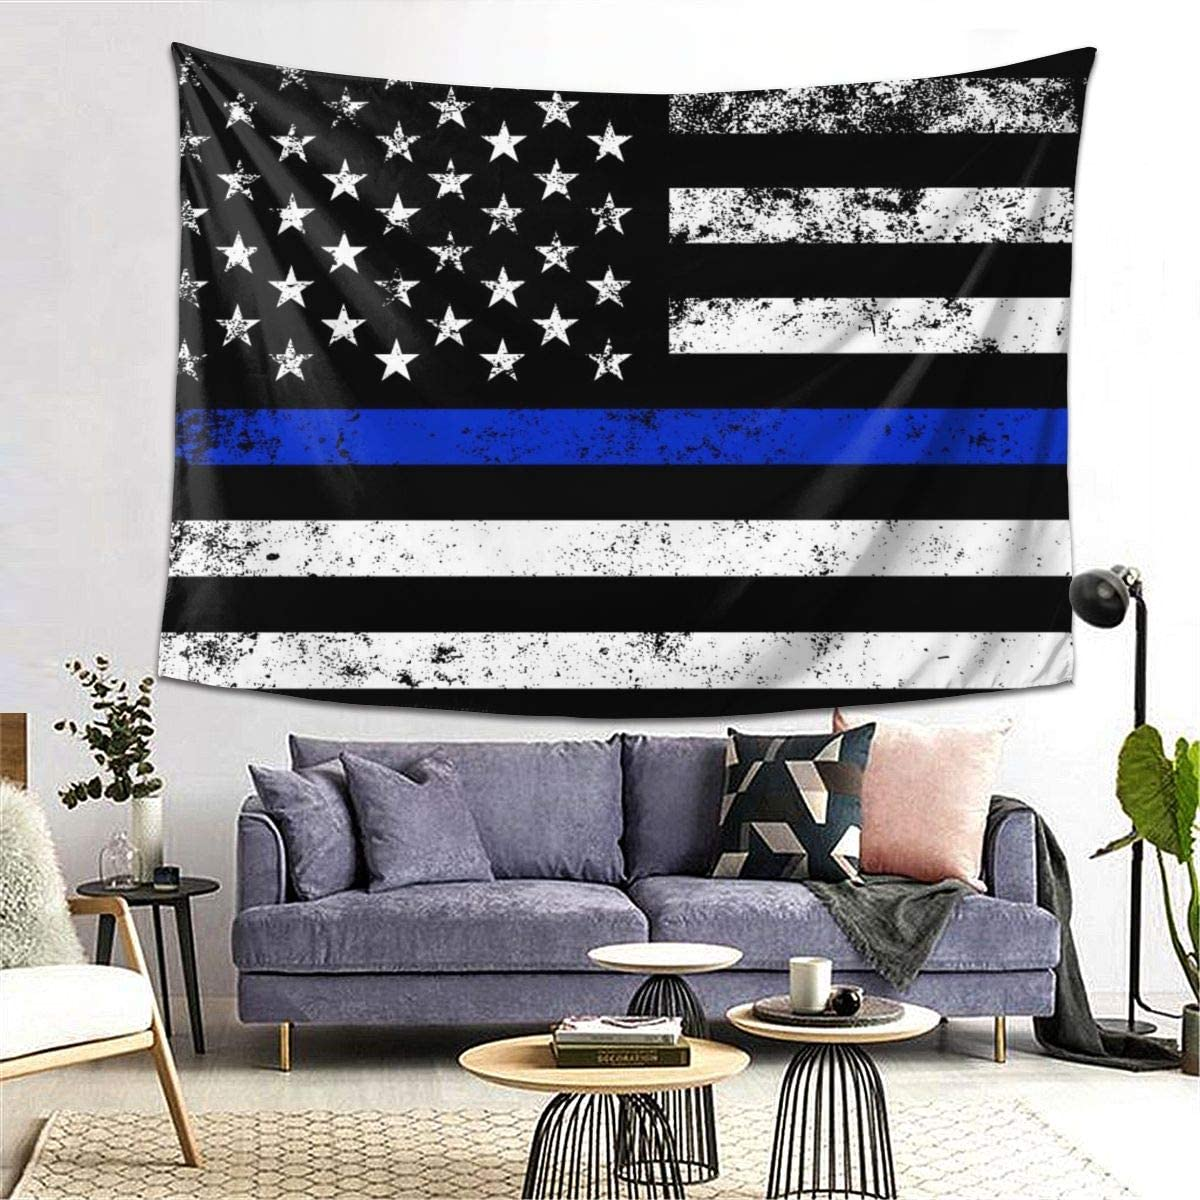 BAIFUMEN Thin Blue Line American Flag Tapestry for Dorm Bedroom Living Room Home Decor Decorative Tapestry Wall Hanging Tapestries with 80x60 Inch